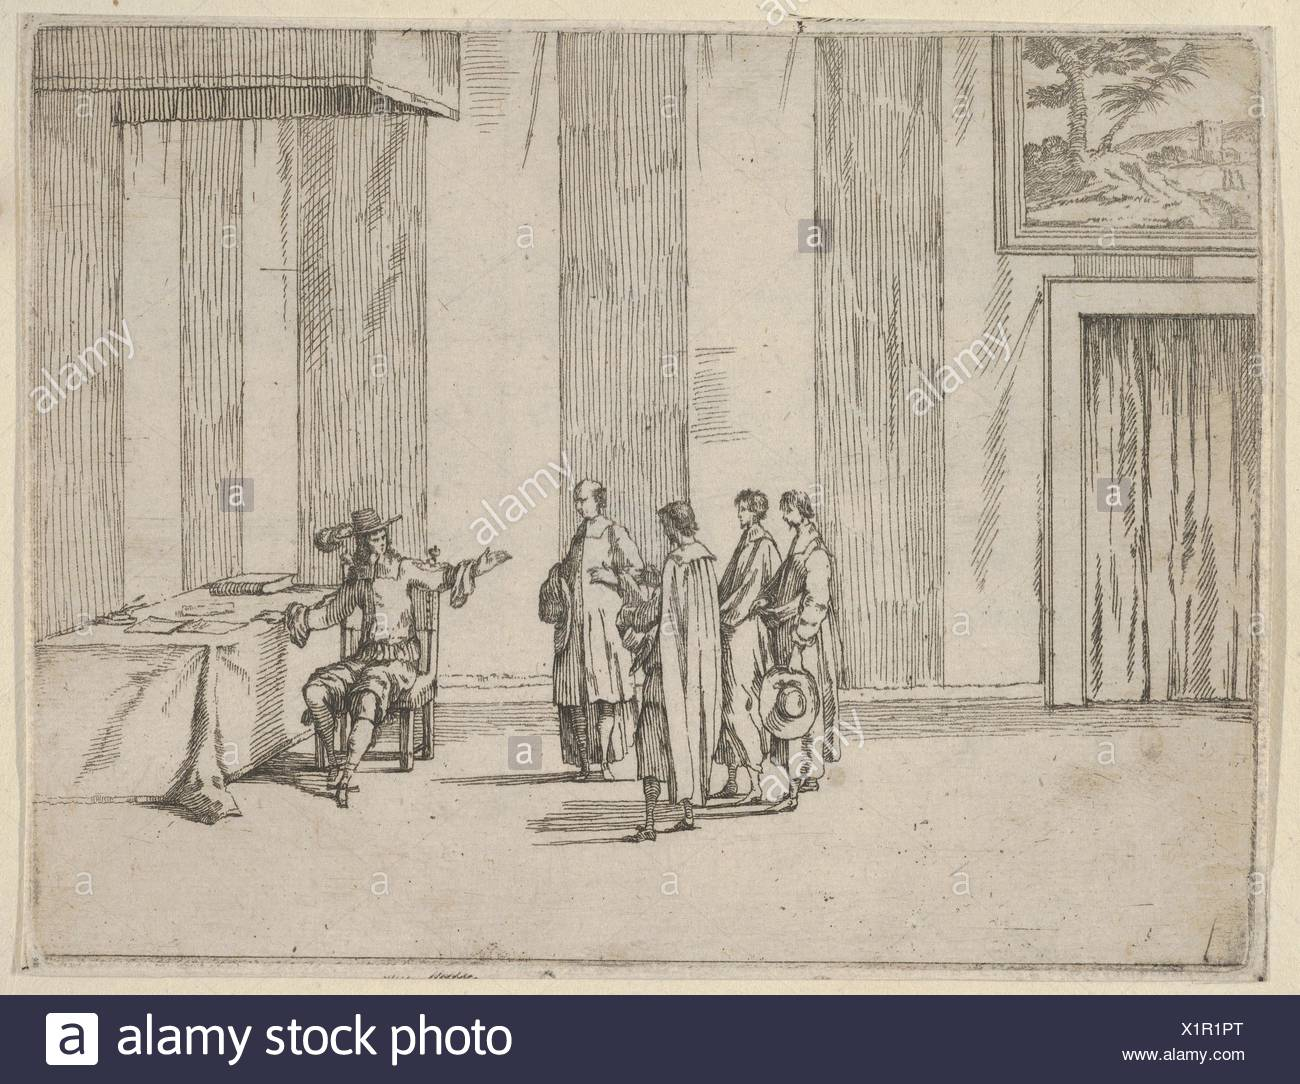 Francesco I d'Este Takes Particular Care to Ensure that Justice is Observed, from L'Idea di un Principe ed Eroe Cristiano in Francesco I d'Este, di - Stock Image